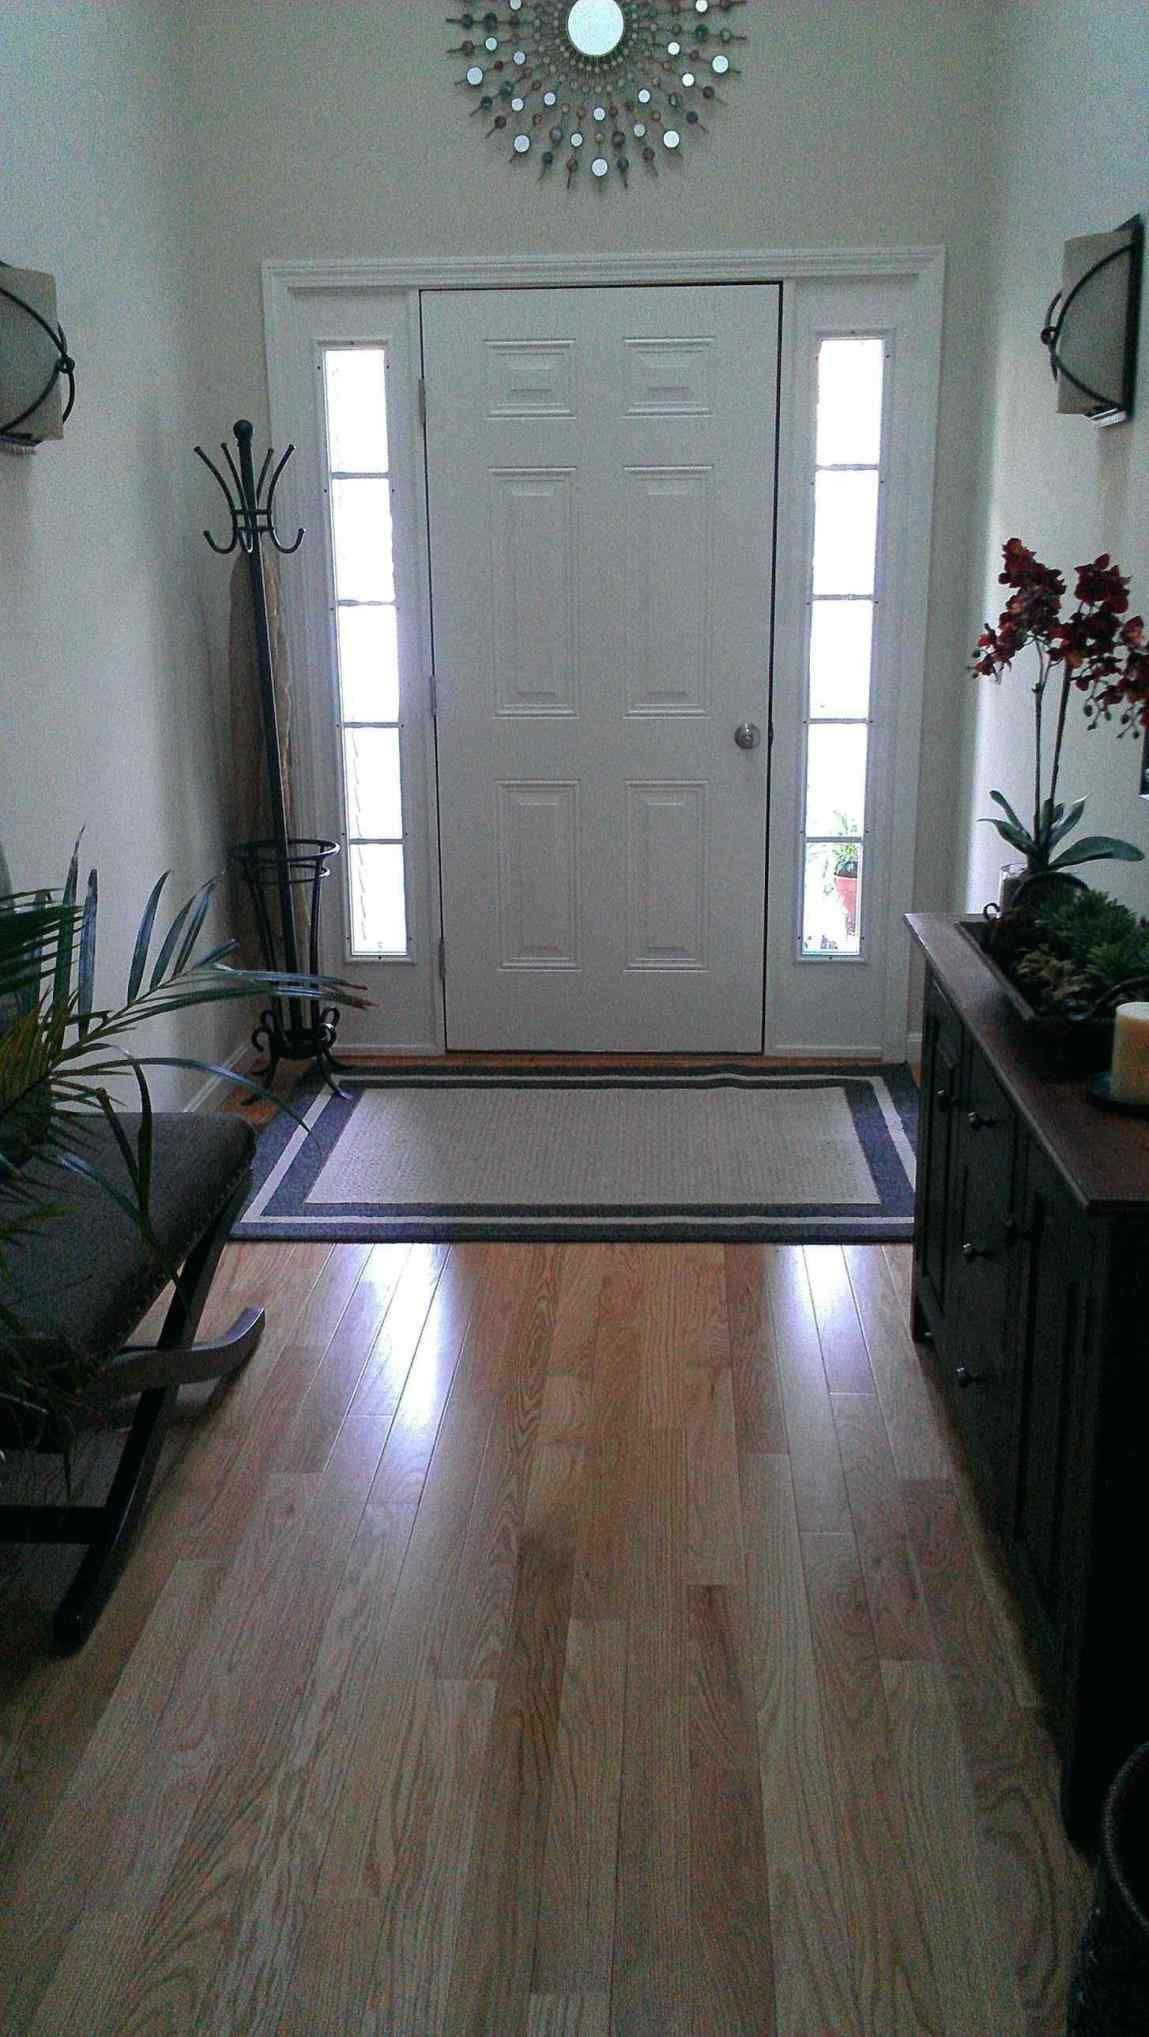 Pinterest Cool Lovely Rugs For Inside Front Door For Unique Decoration  Httpsbreakpr